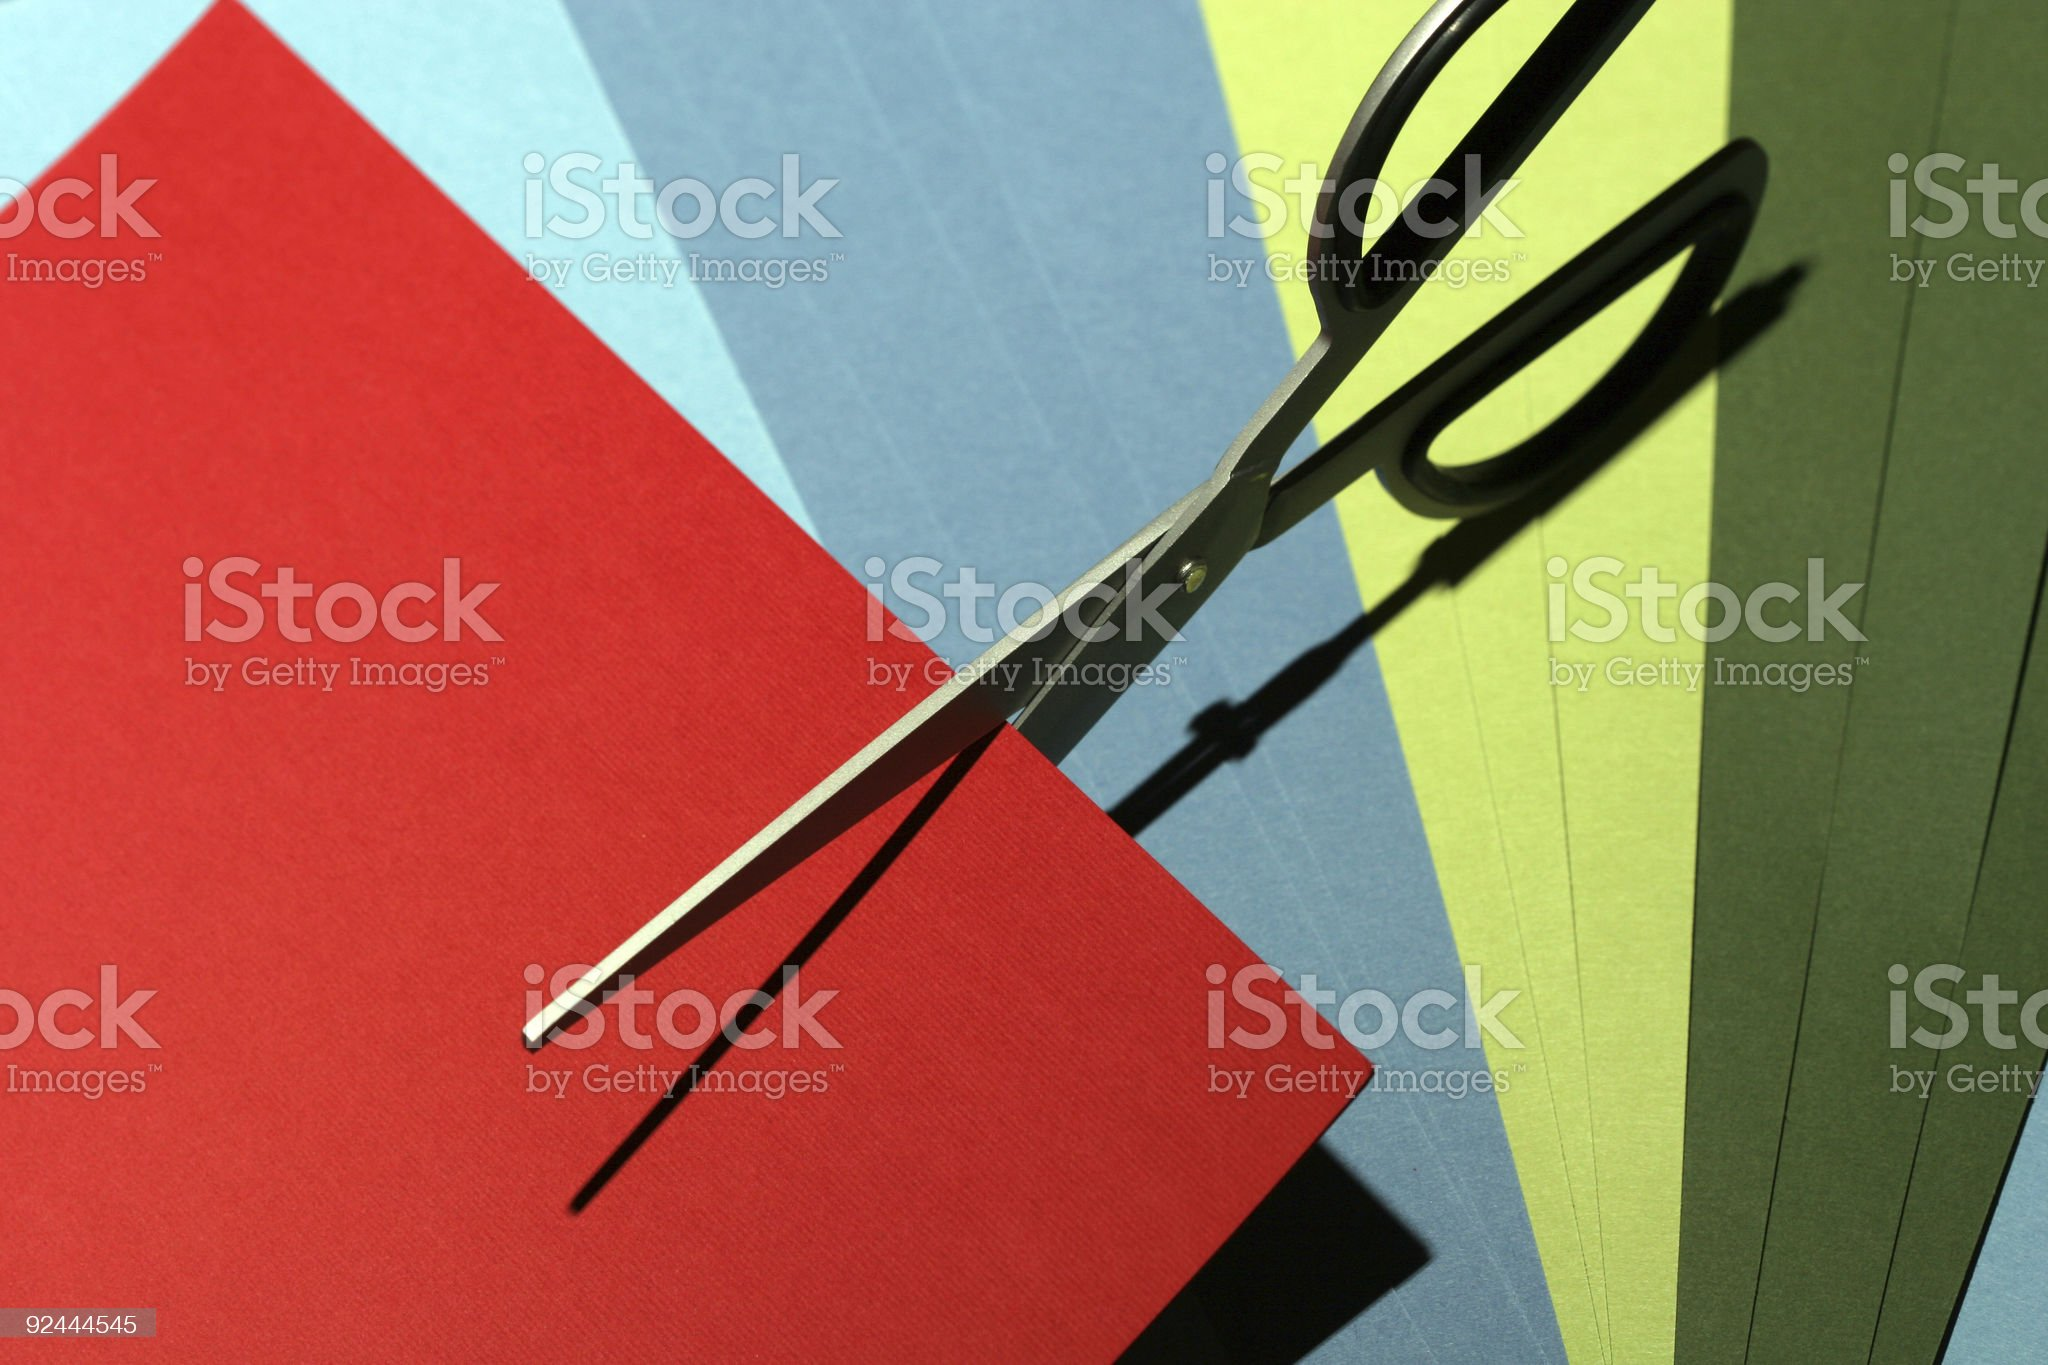 scissors on card stock royalty-free stock photo